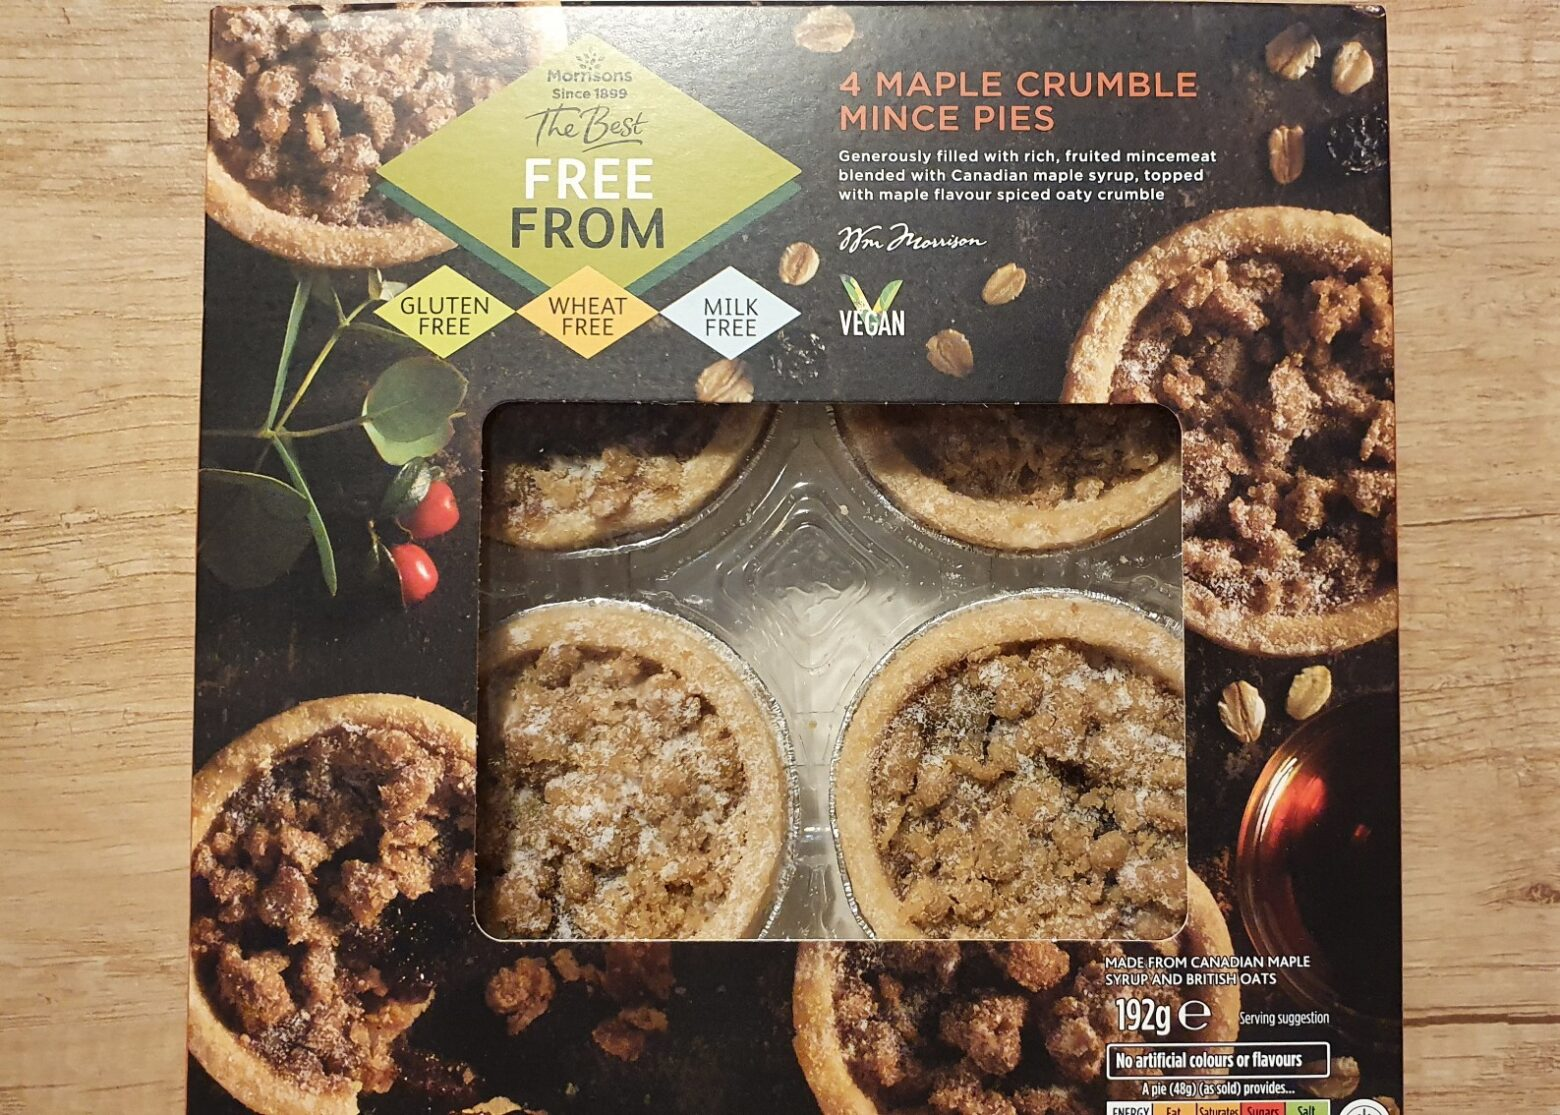 Morrisons 'The Best' Free From Maple Crumble Mince Pie Review 2020